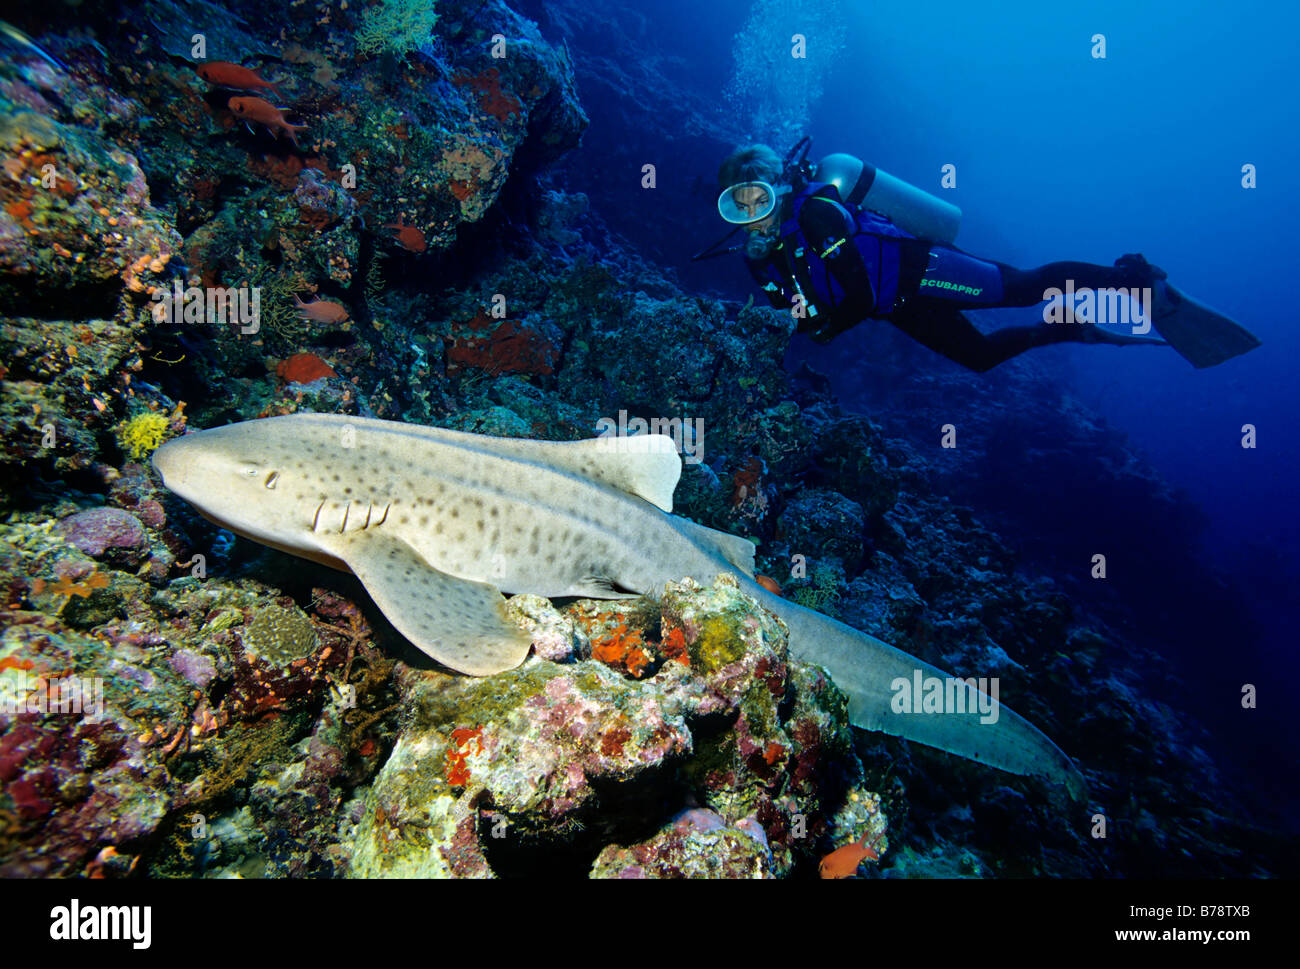 Scuba diver watching a Zebra Shark (Stegostoma fasciatum) at a coral reef, Lhaviyani Atoll, Maldives, Indian Ocean, - Stock Image